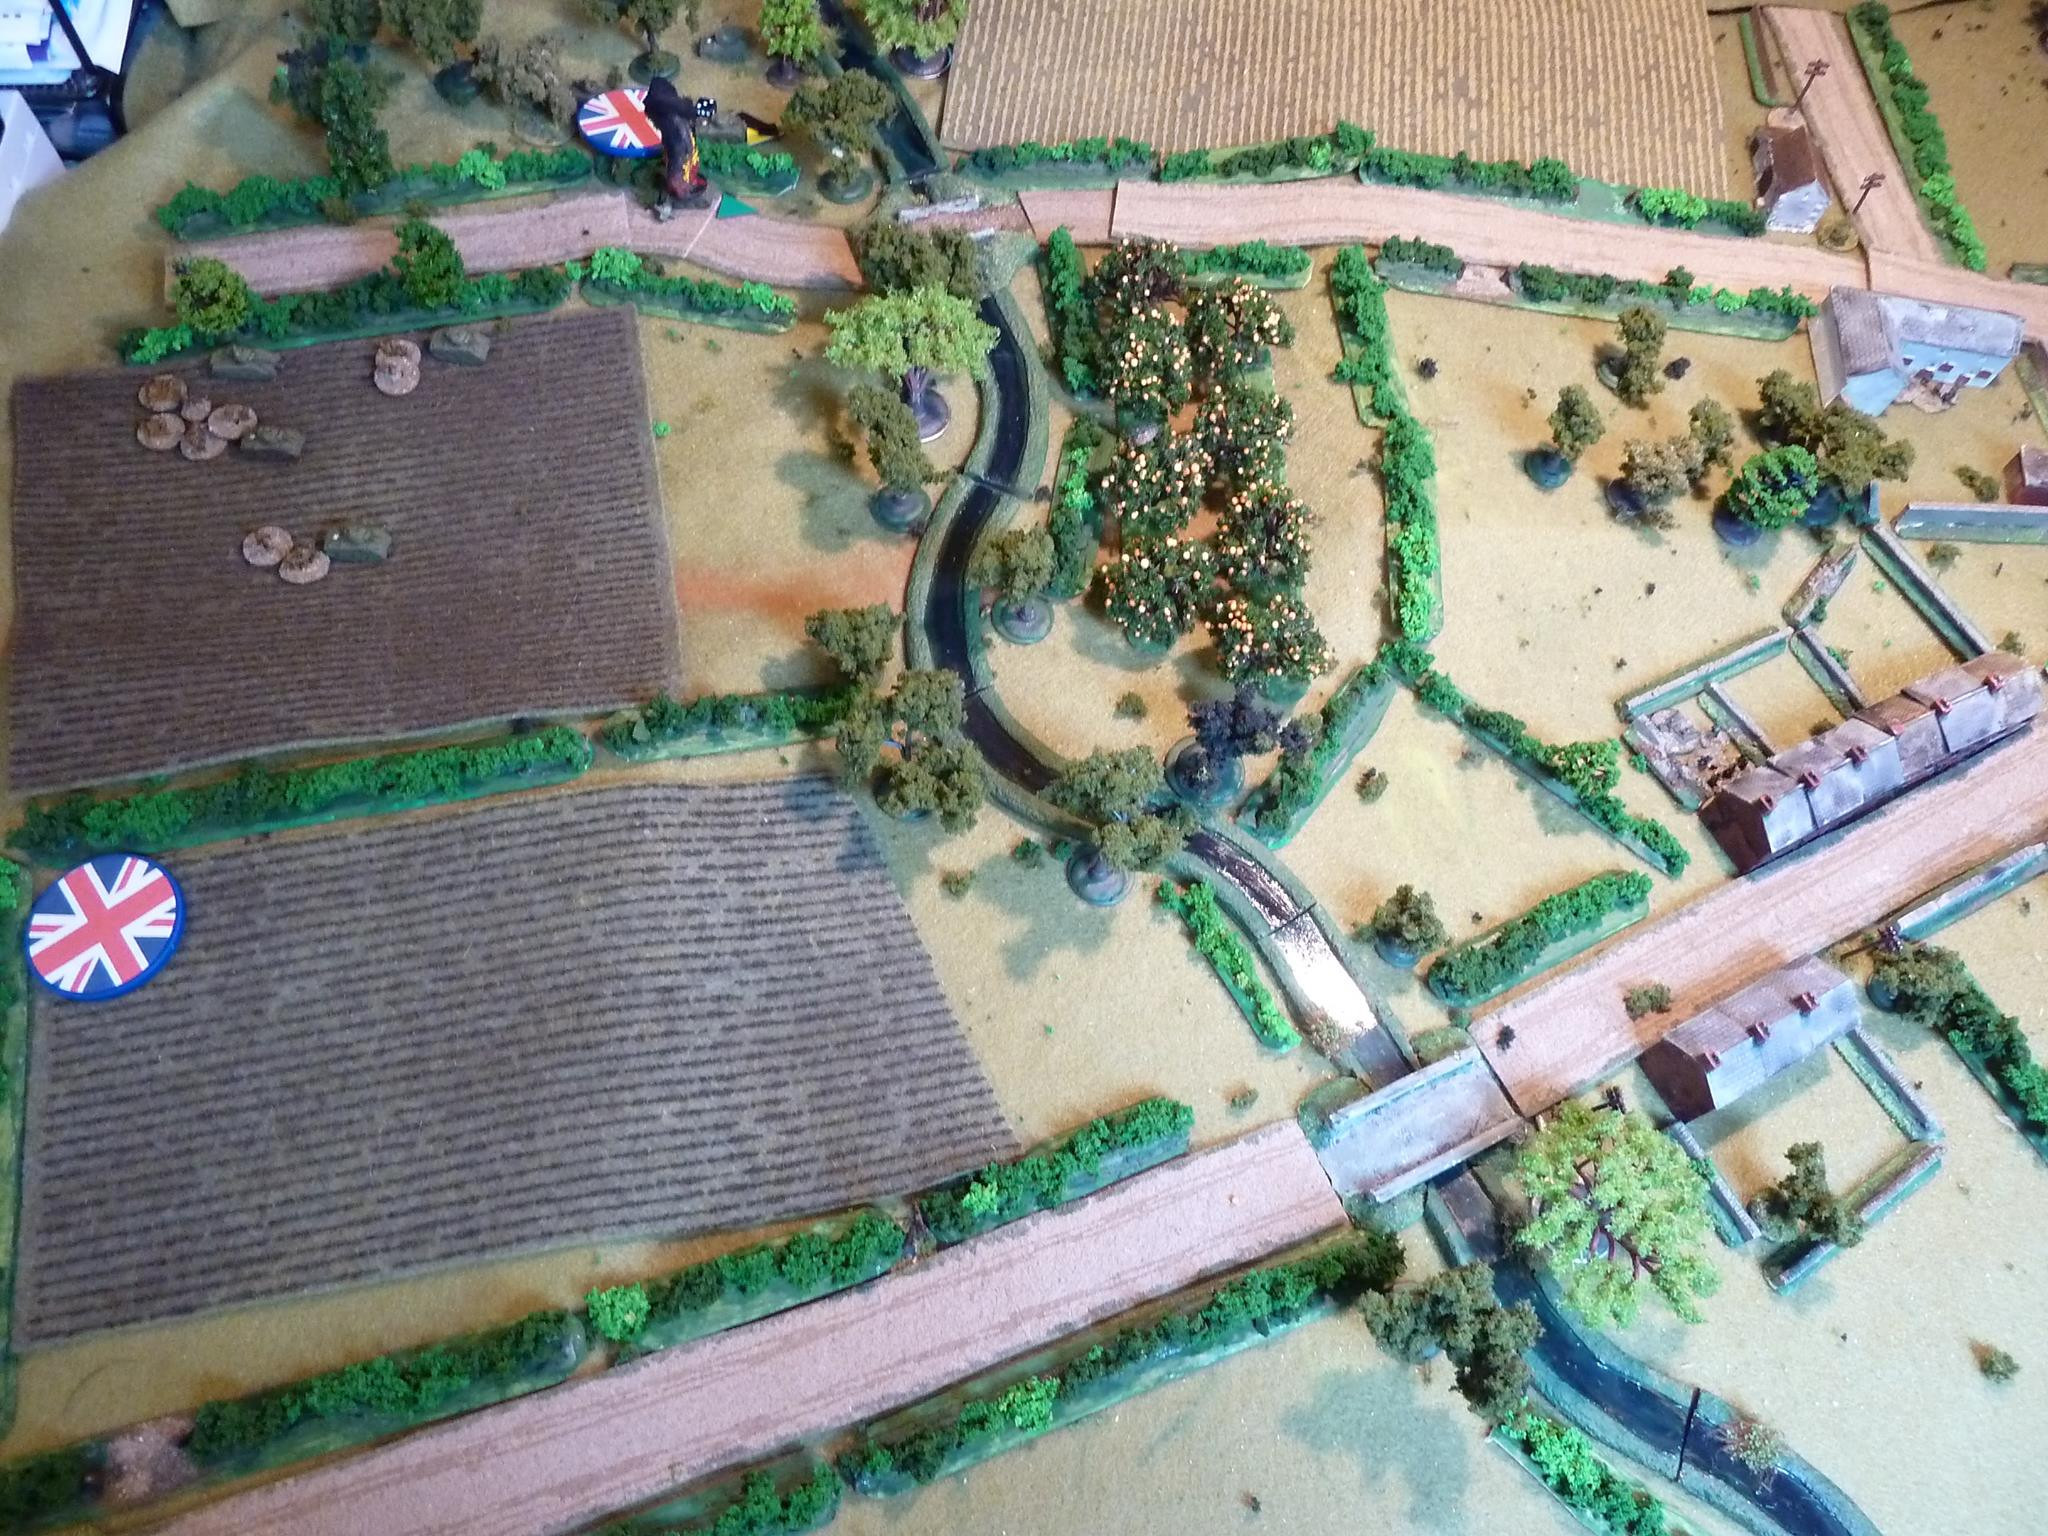 First blood to the Panther, just off cam on the right:  a smoking M4.  The Canadian second force heads across the ploughed field aiming to cross the river and find cover in the orchard. Quickly spotted by a German sniper tied to an apple tree. Crossing the ploughed field is slow going and the sniper further slows the Canadians with plenty of shock and pins.  The Canadian FOO and Vickers head for the high ground on the left.